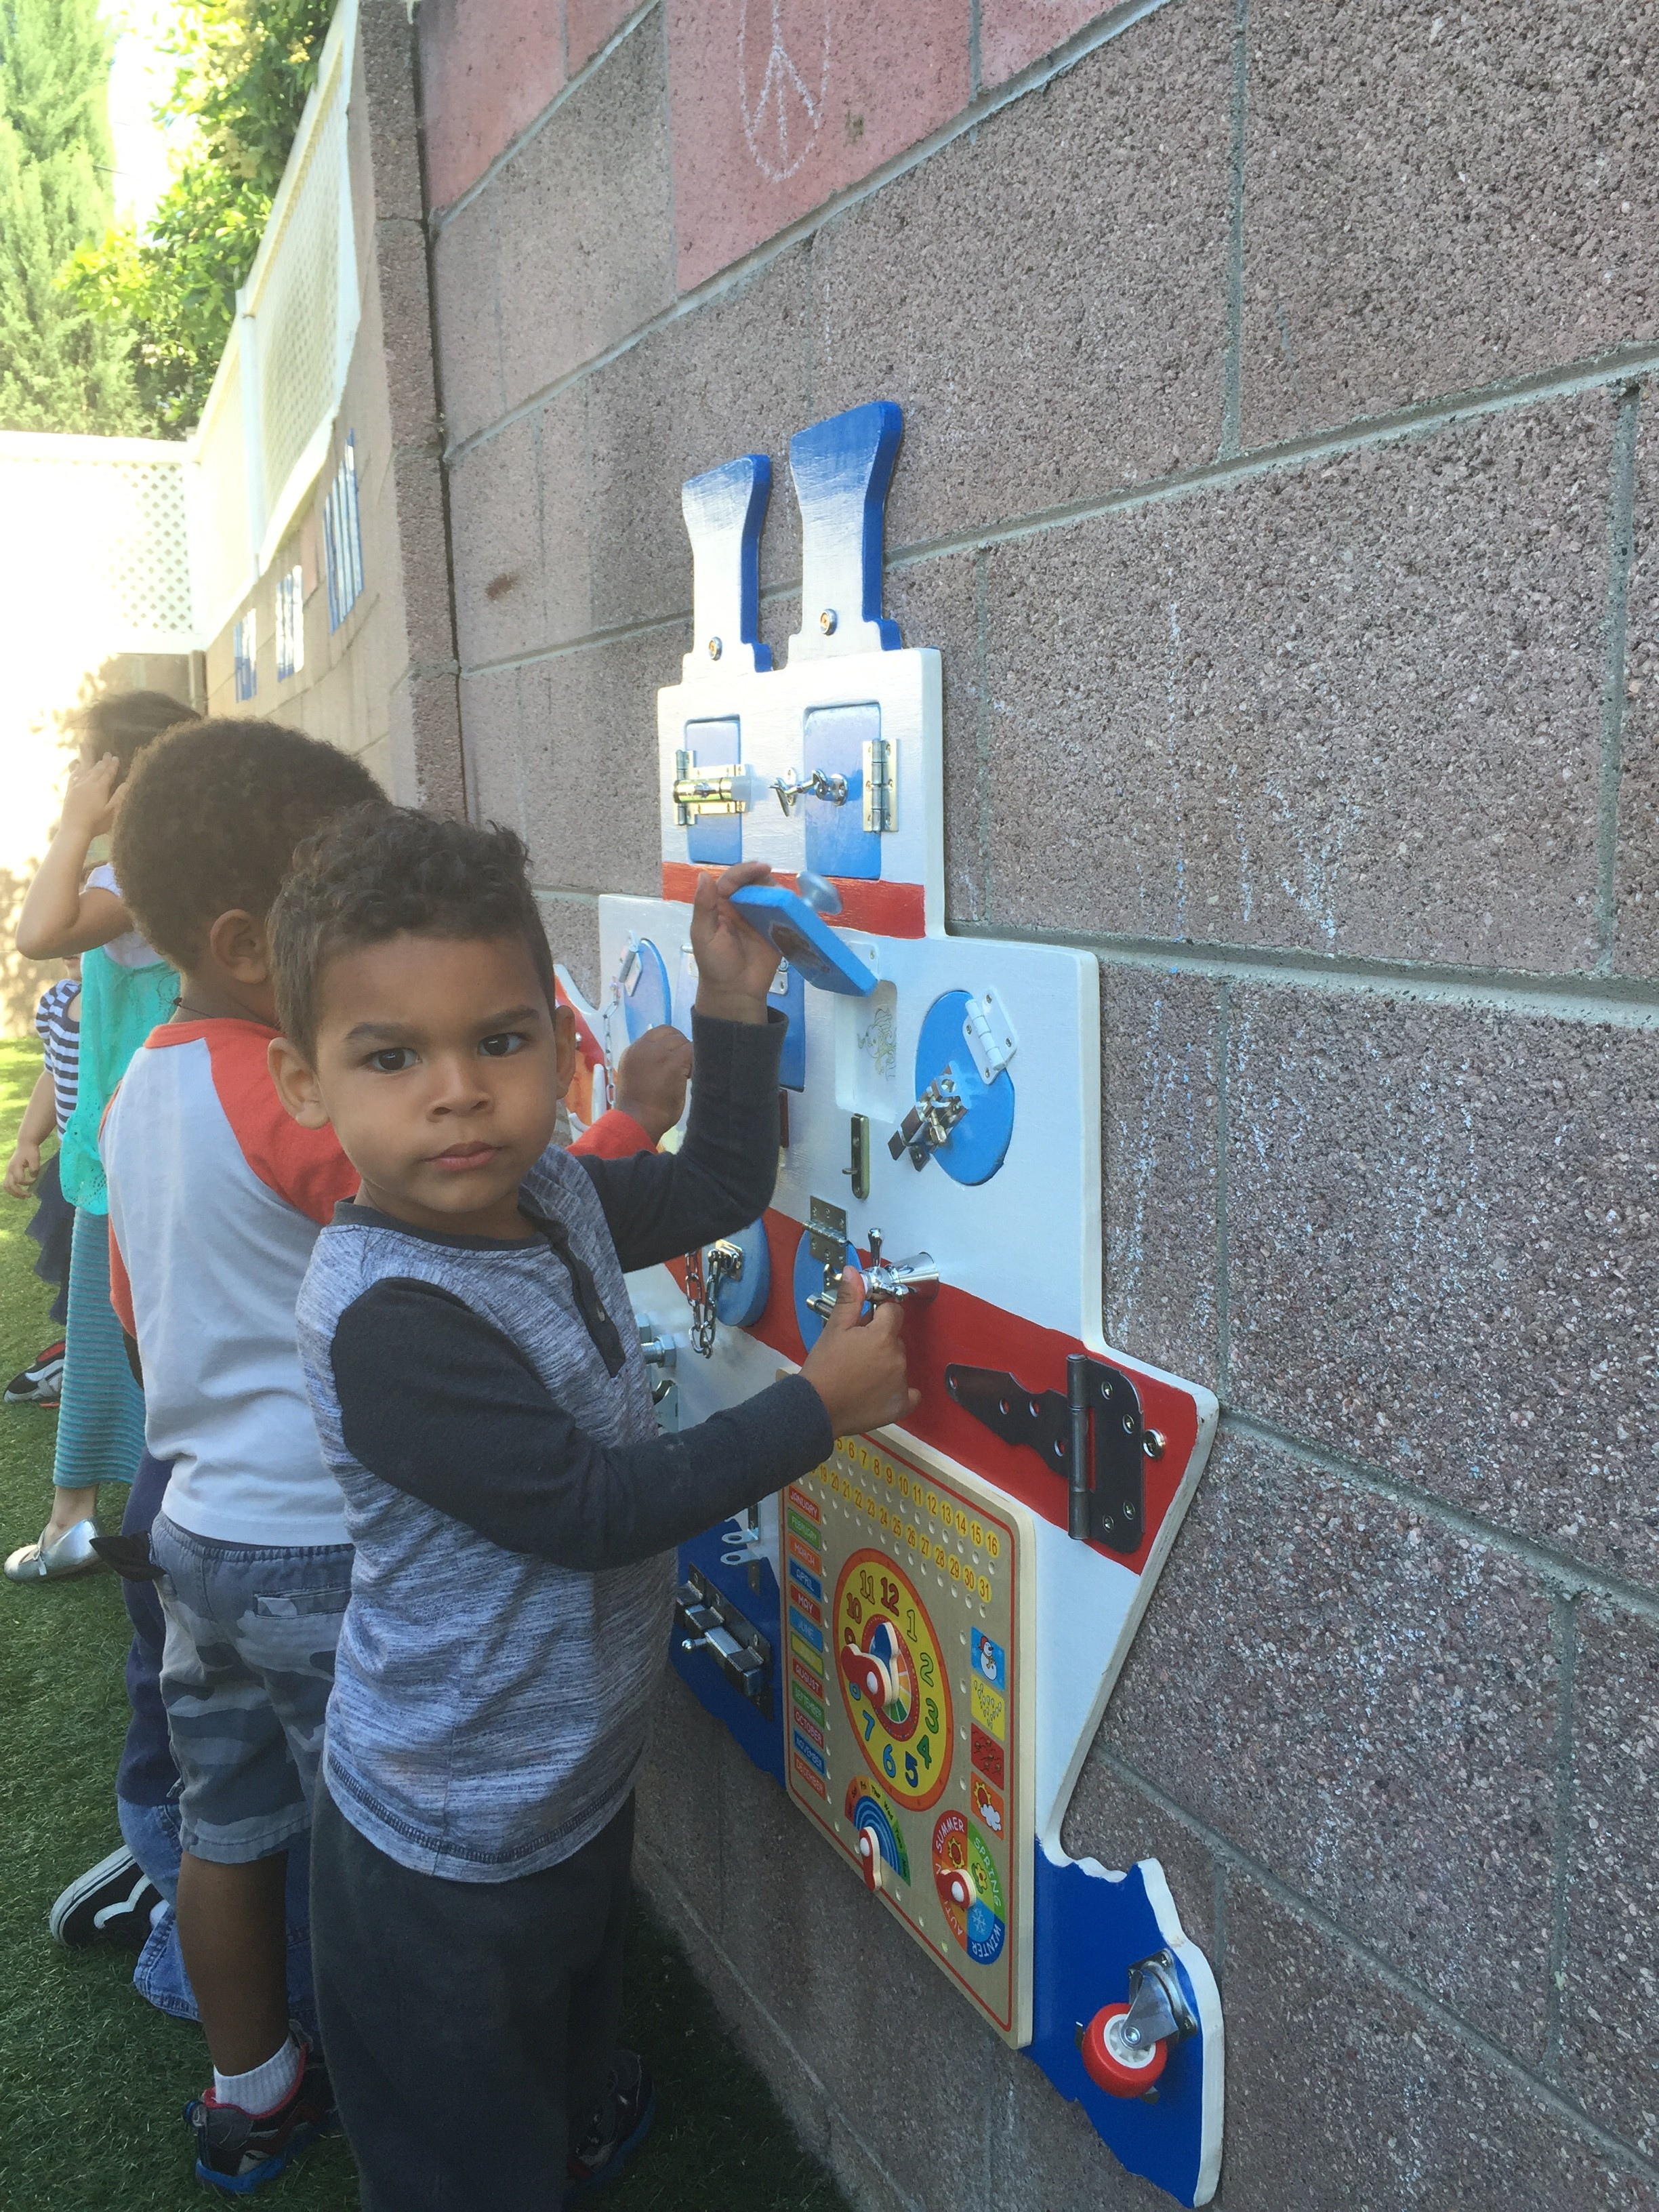 Learning through play at Abc Little School, Sherman Oaks